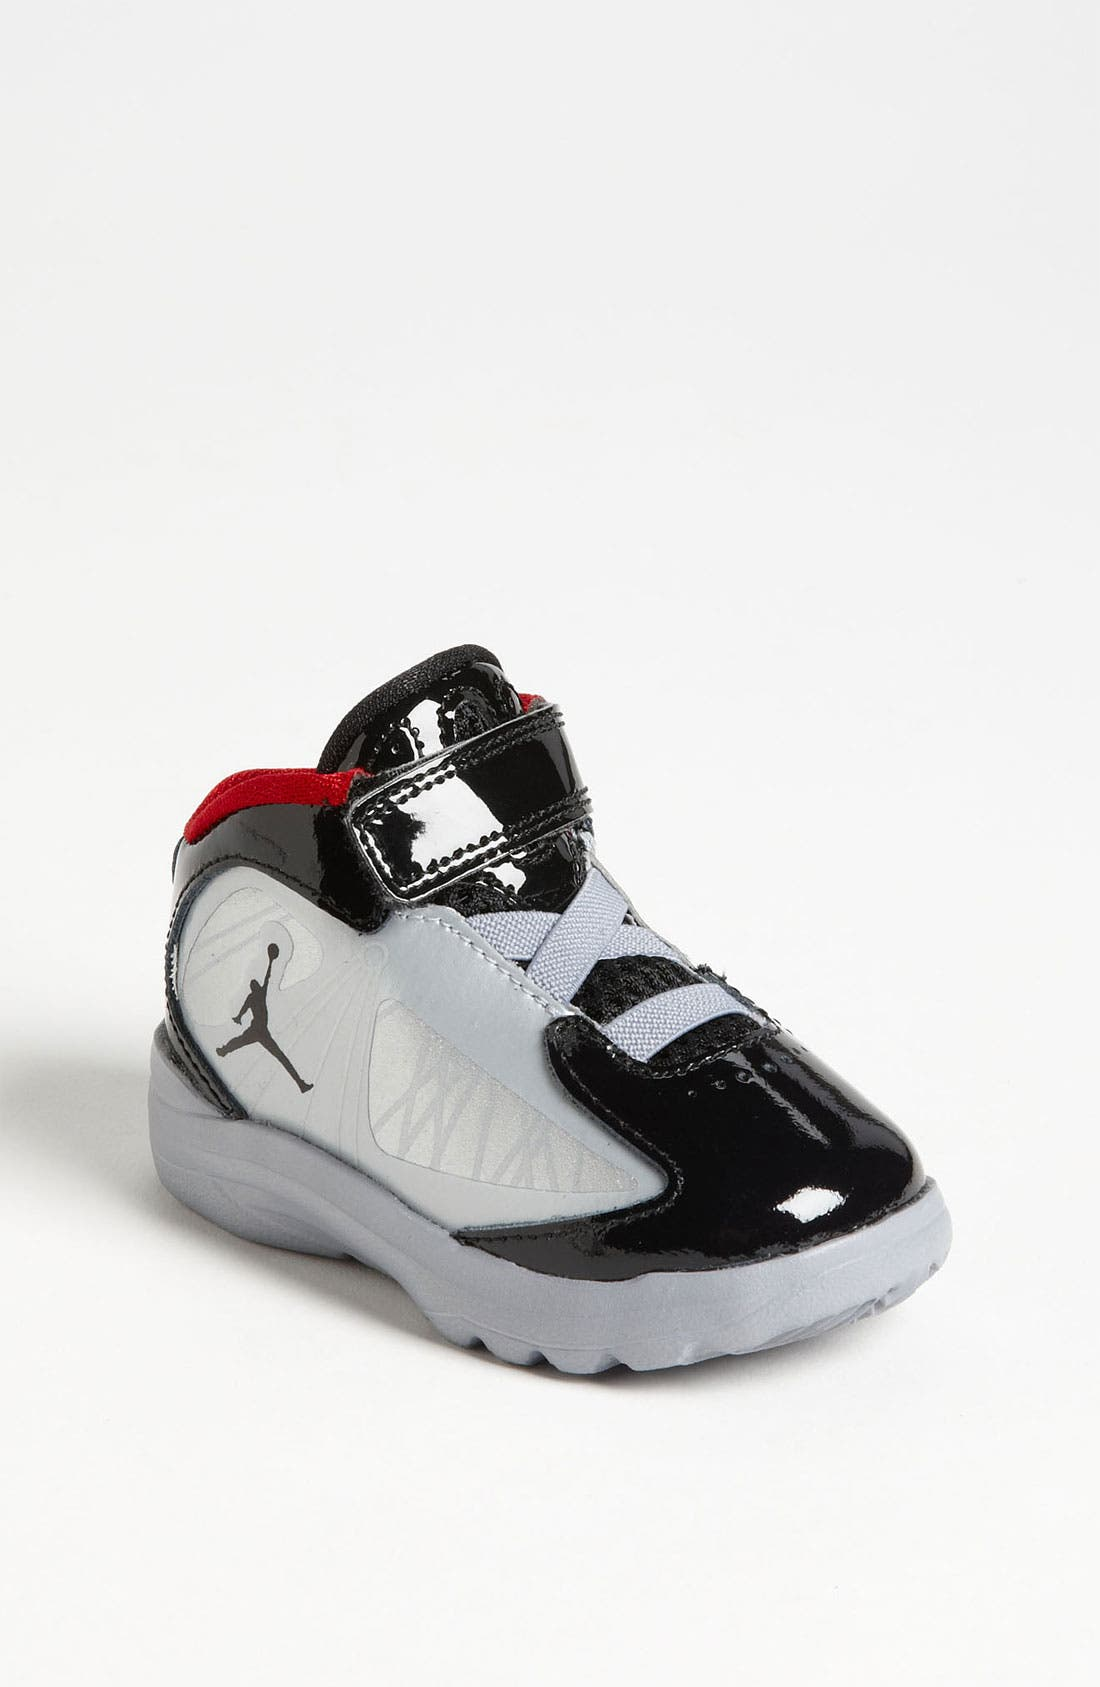 Alternate Image 1 Selected - Nike 'Jordan Aero Flight' Sneaker (Baby, Walker & Toddler)